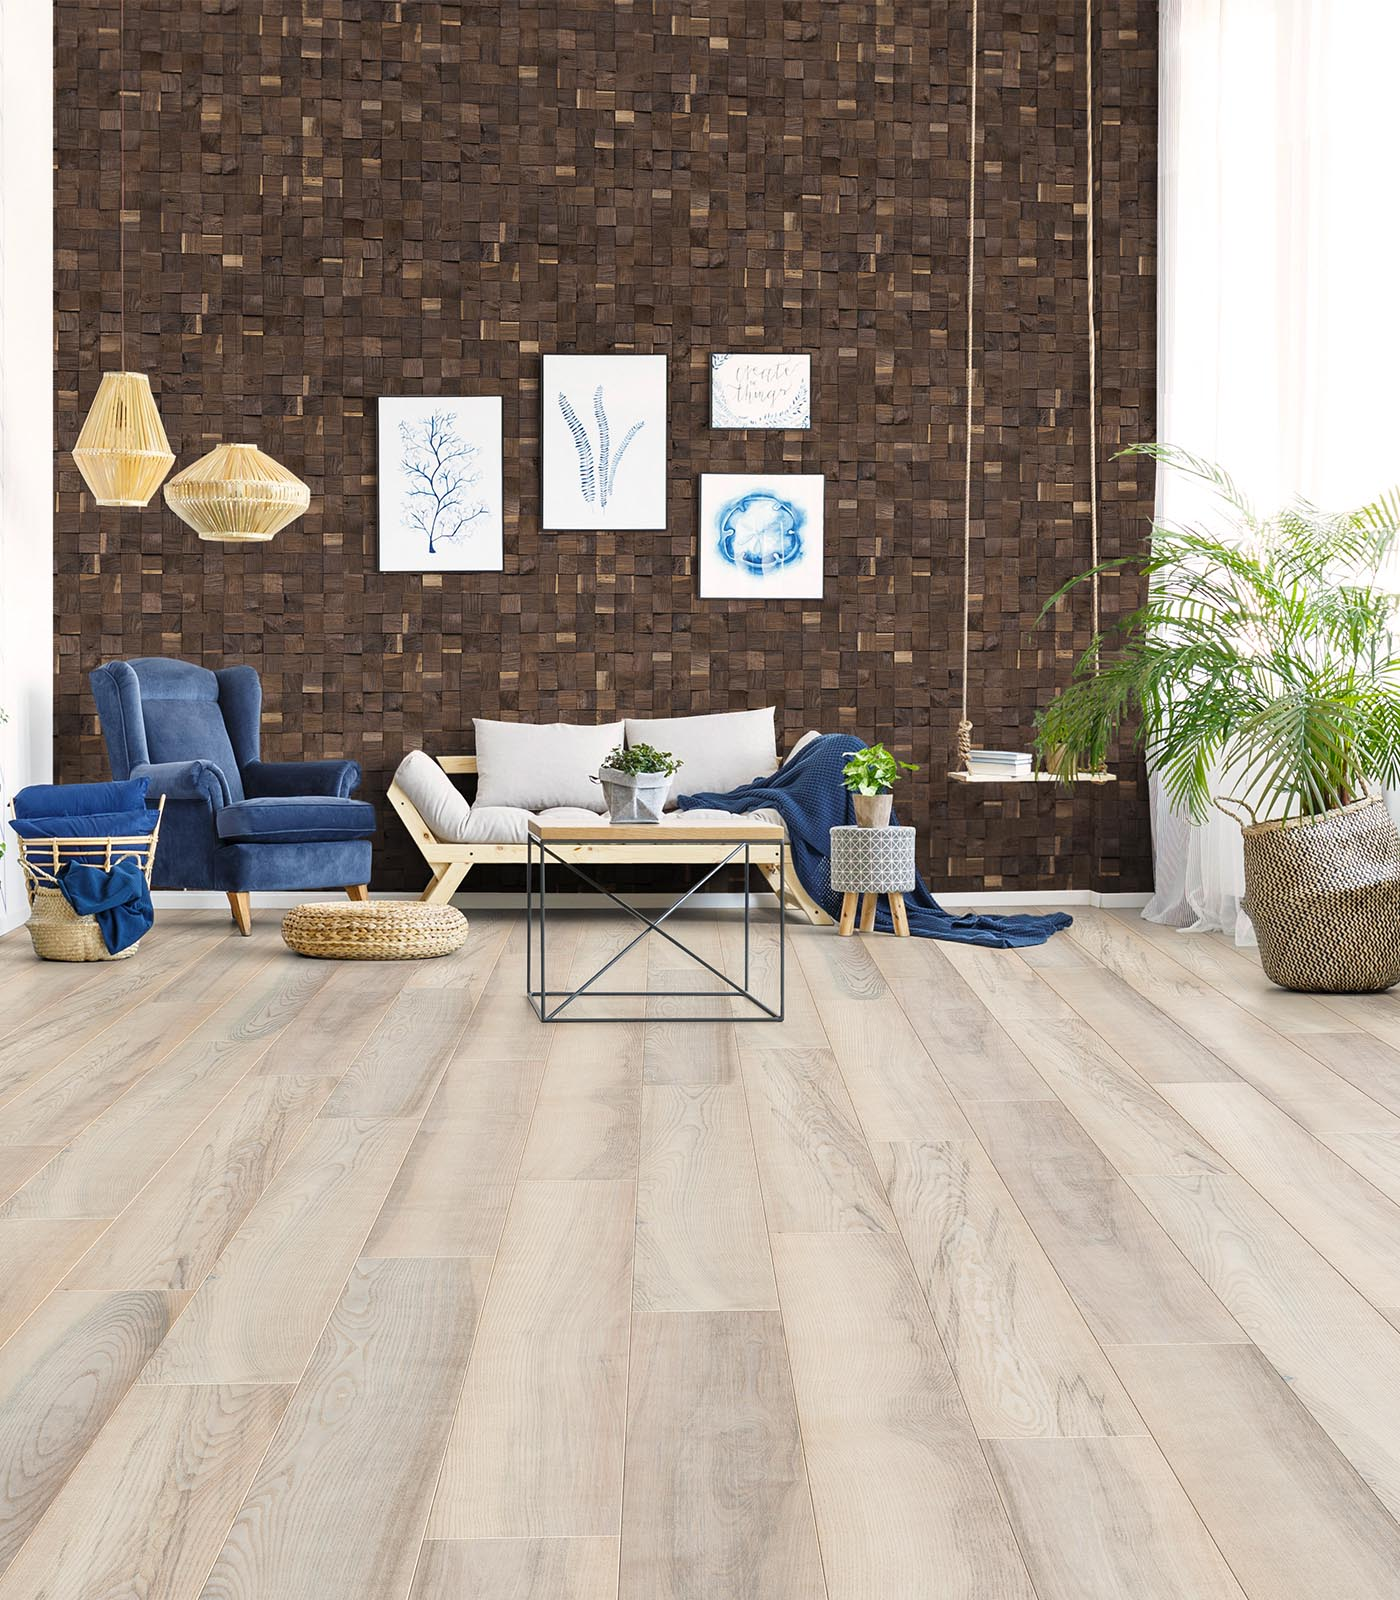 Heracles-Baroque Collection-European Oak wall panelling